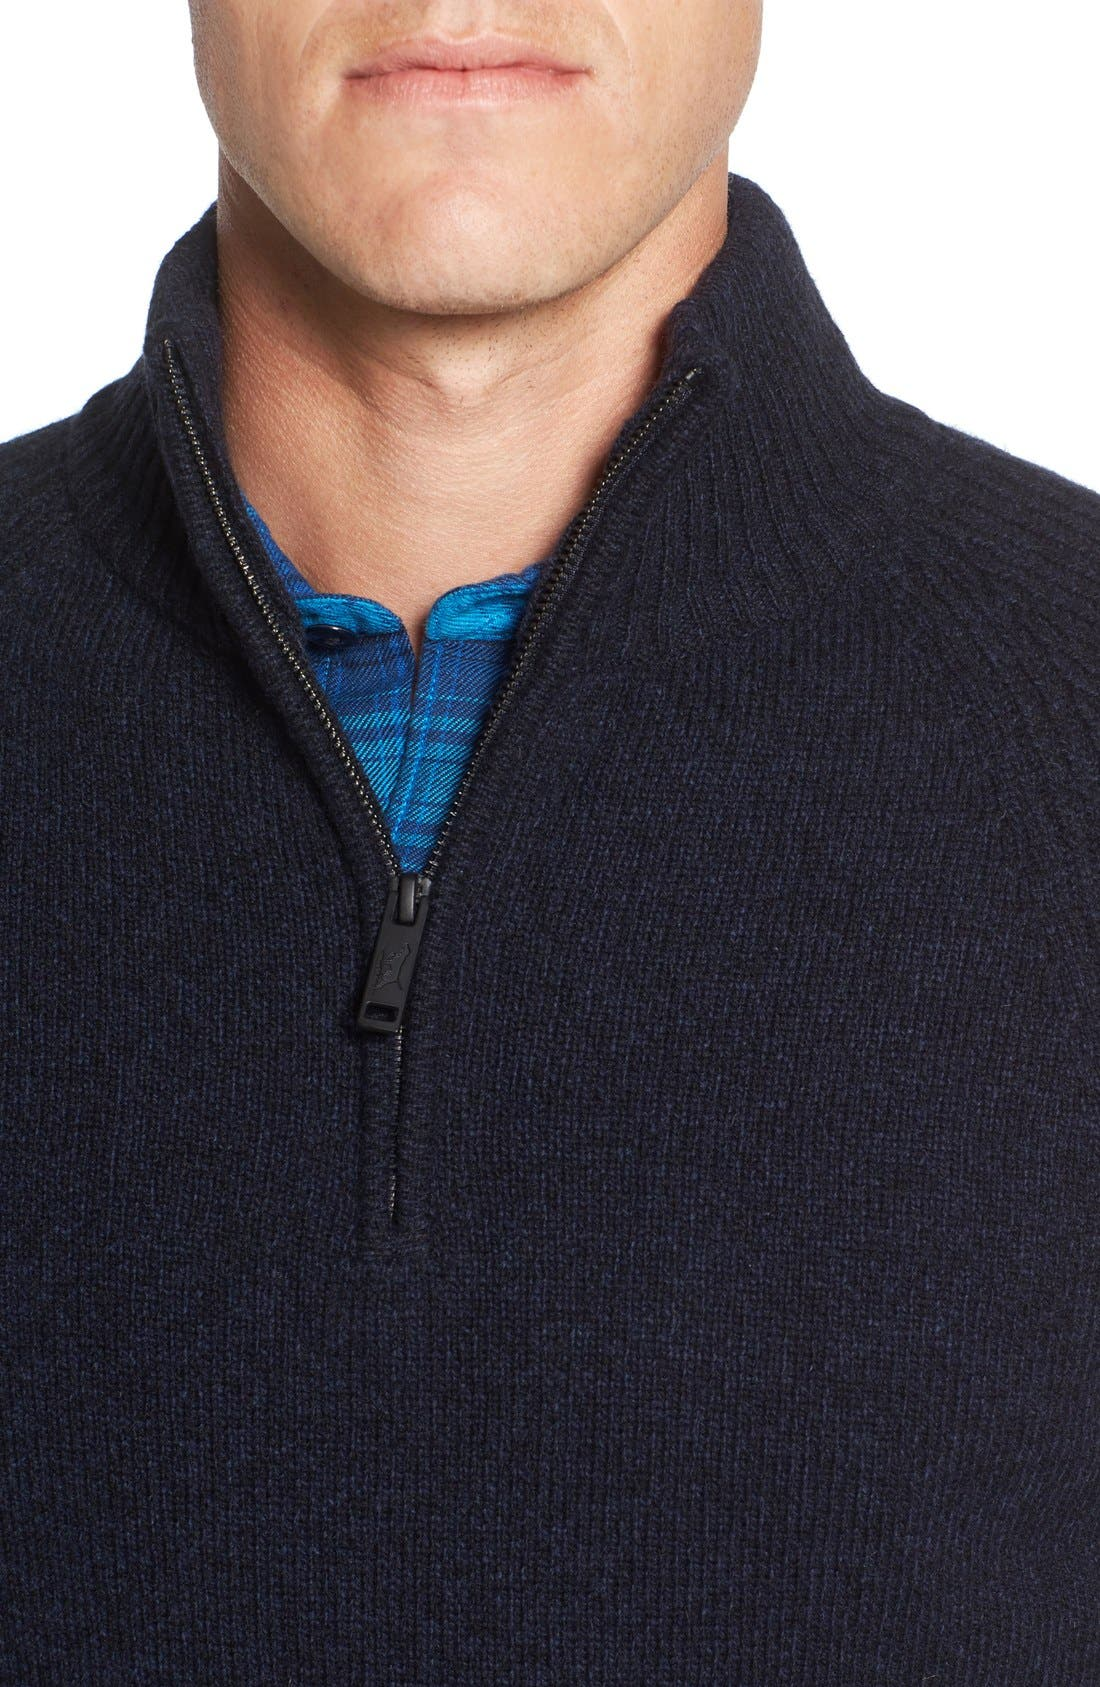 Stredwick Lambswool Sweater,                             Alternate thumbnail 4, color,                             Midnight